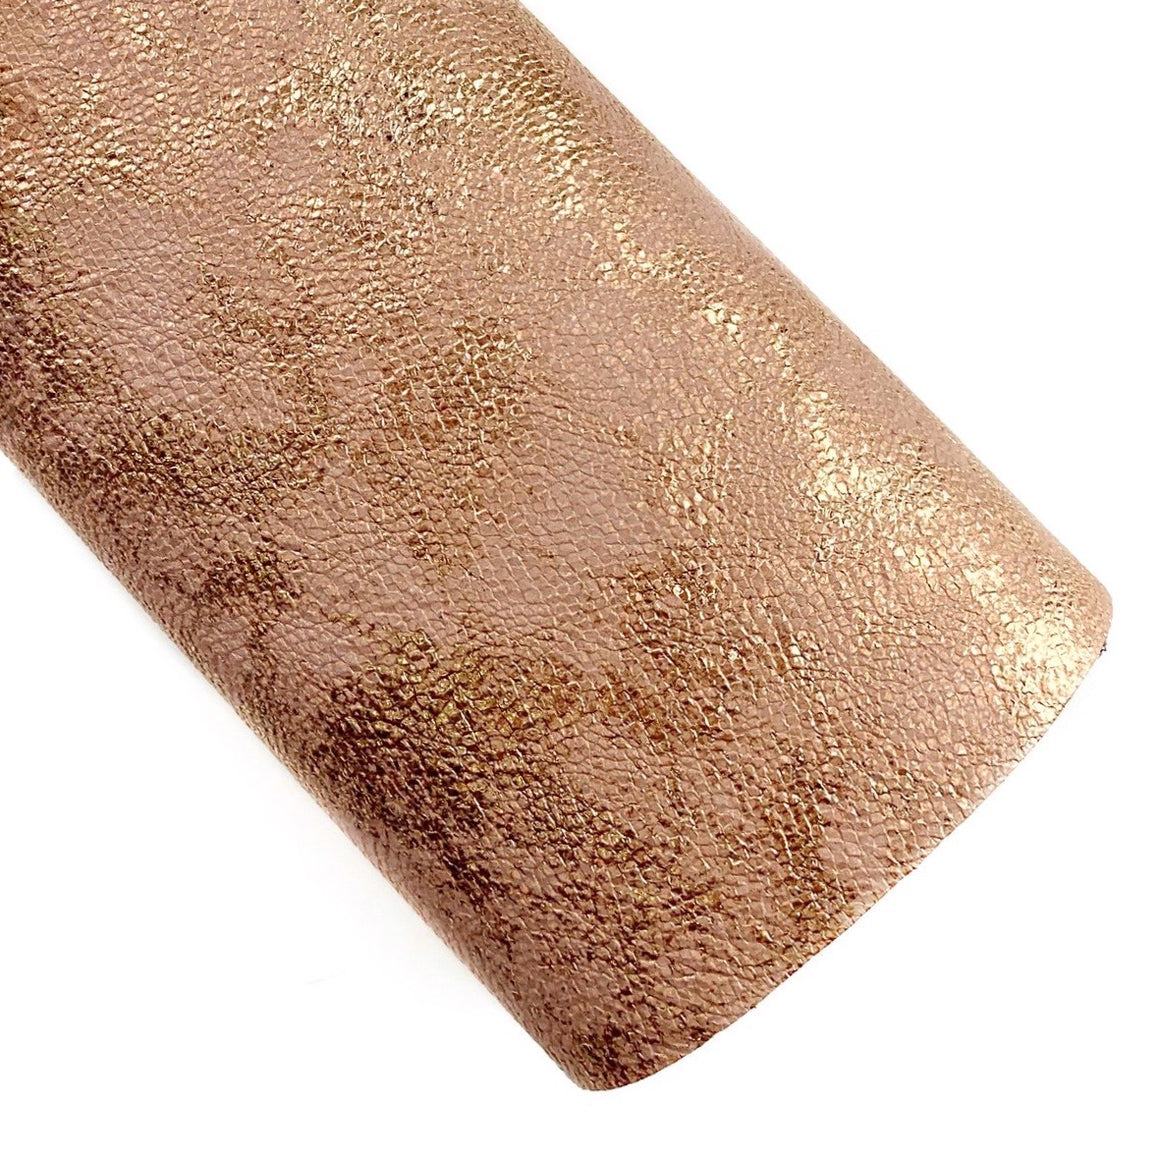 Blush Royal Metallic Embossed Vegan Leather